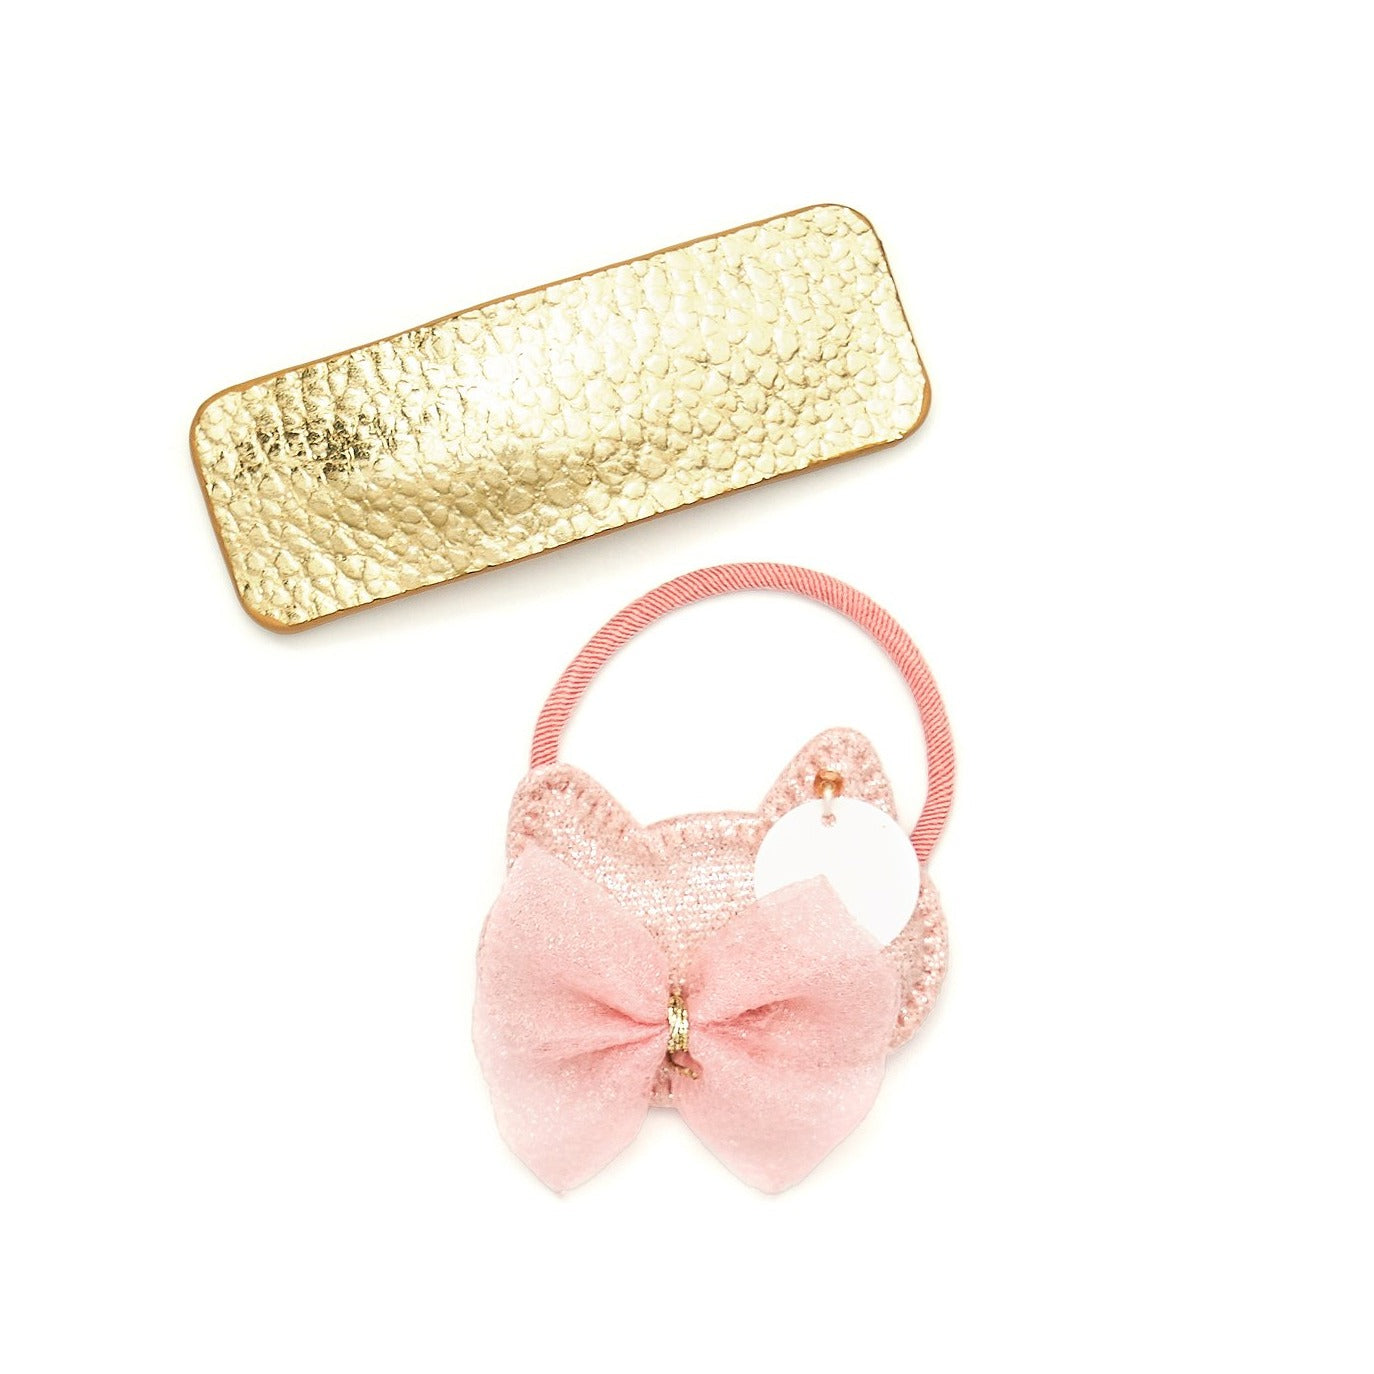 Catty Bow hair tie with very gold hair clip set